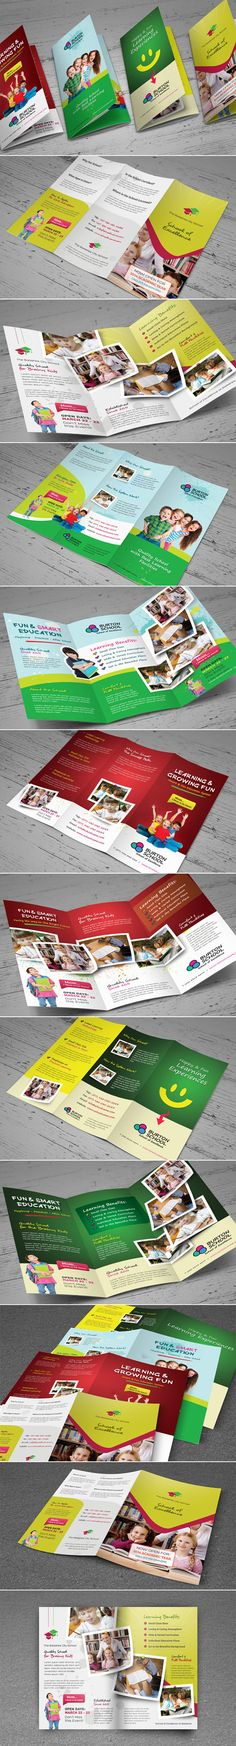 Junior School Trifold & Bifold Brochures Professional business brochure designs #brochuredesign #premiumbrochures #professionalbrochure #corporatebrochures #businessbrochures